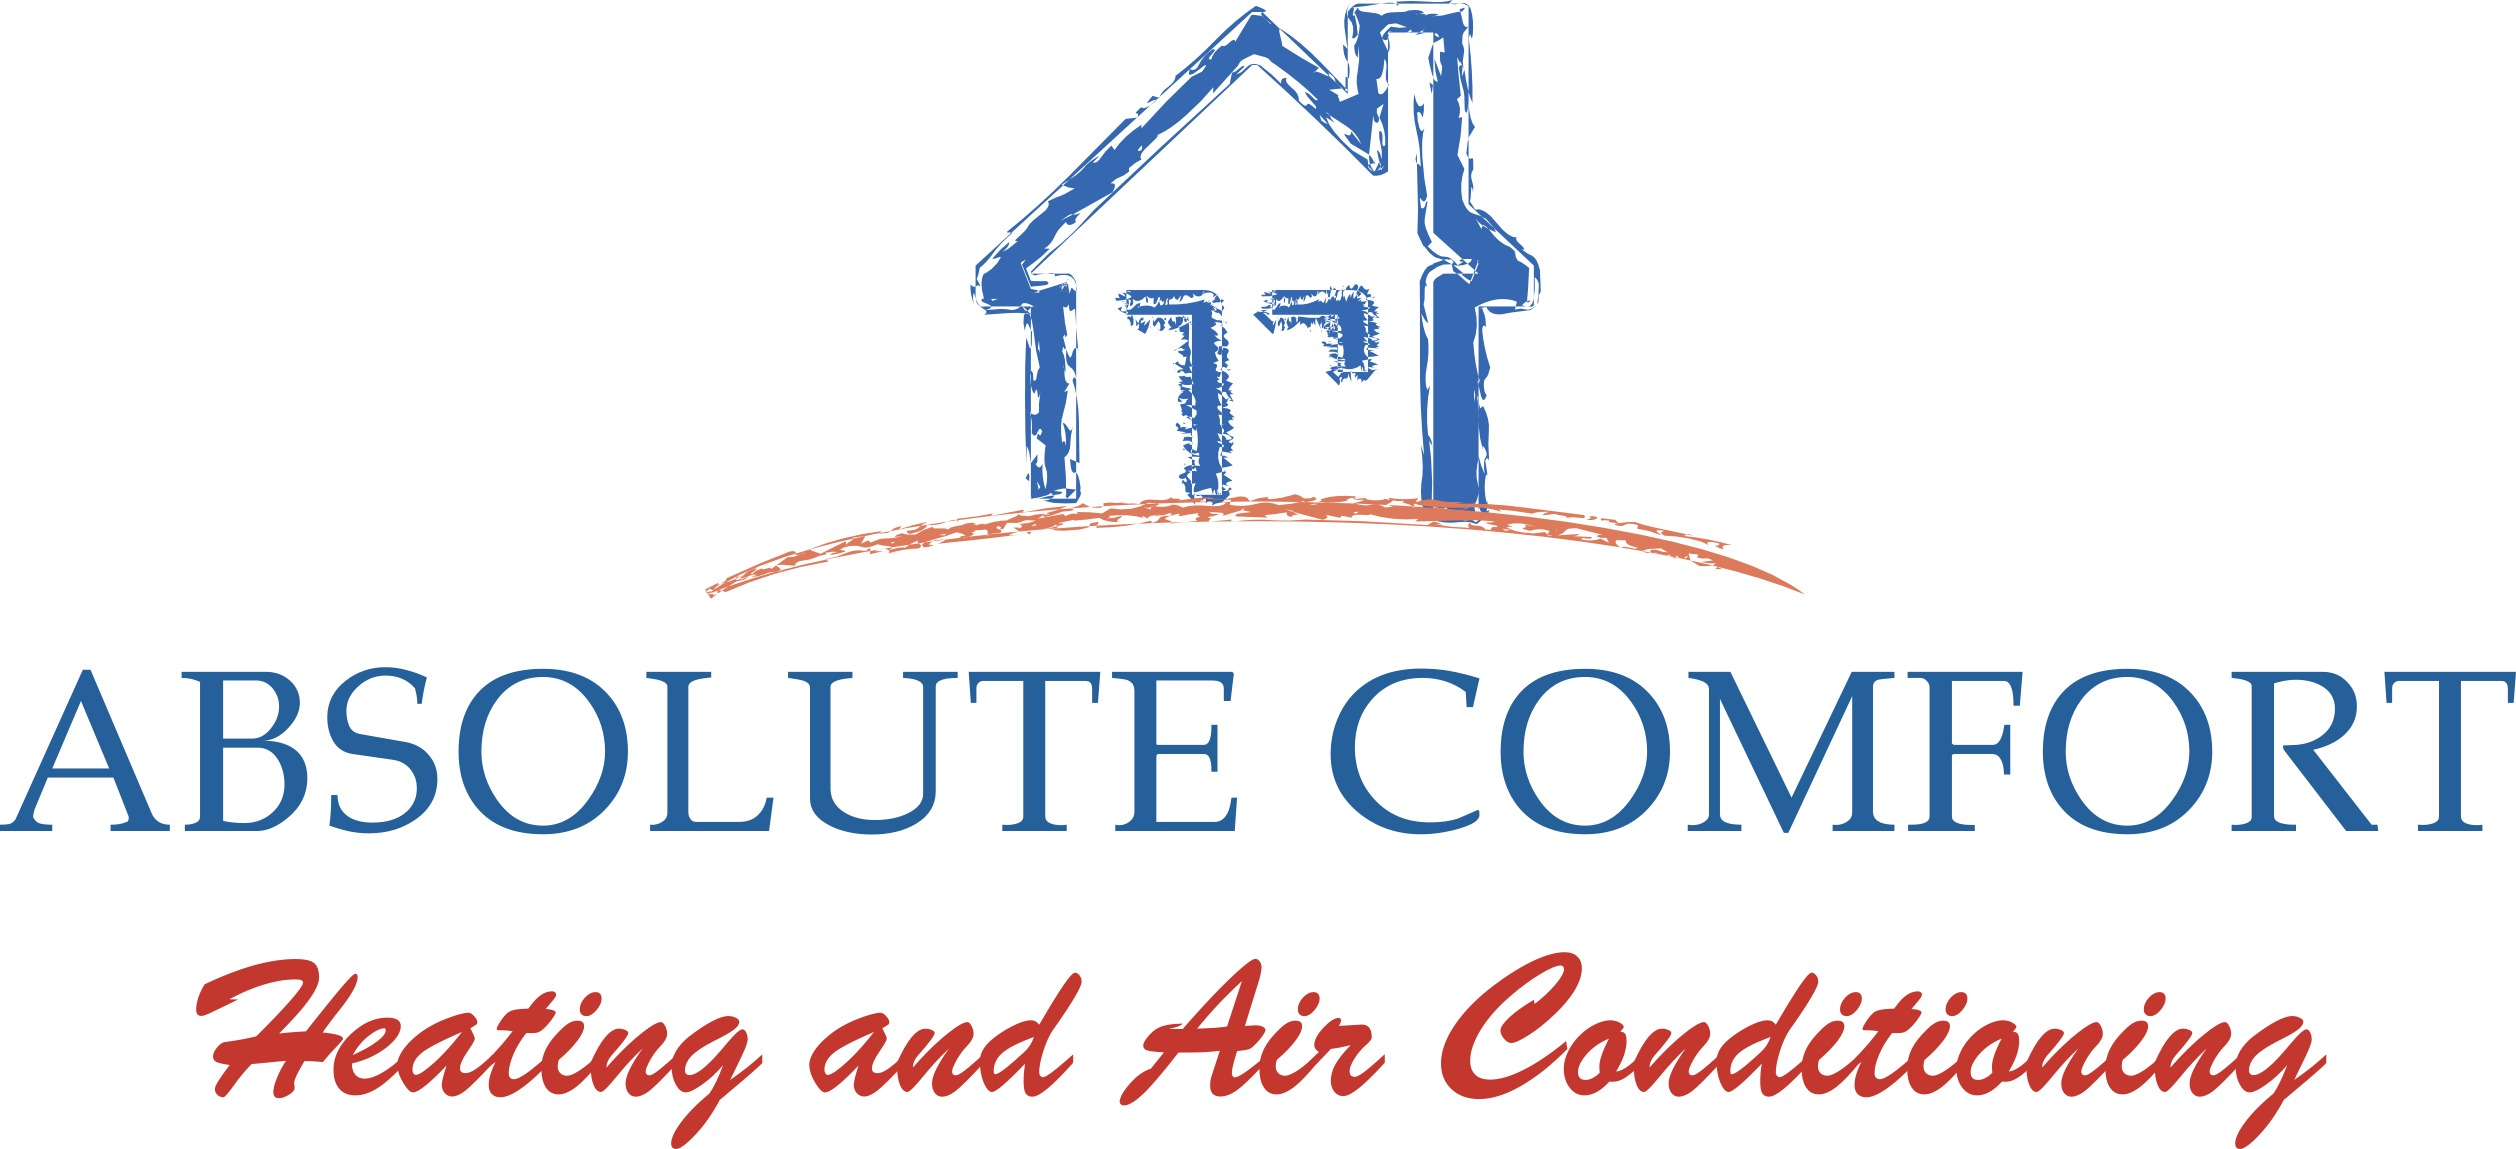 Absolute Comfort Heating and Air Conditioning logo